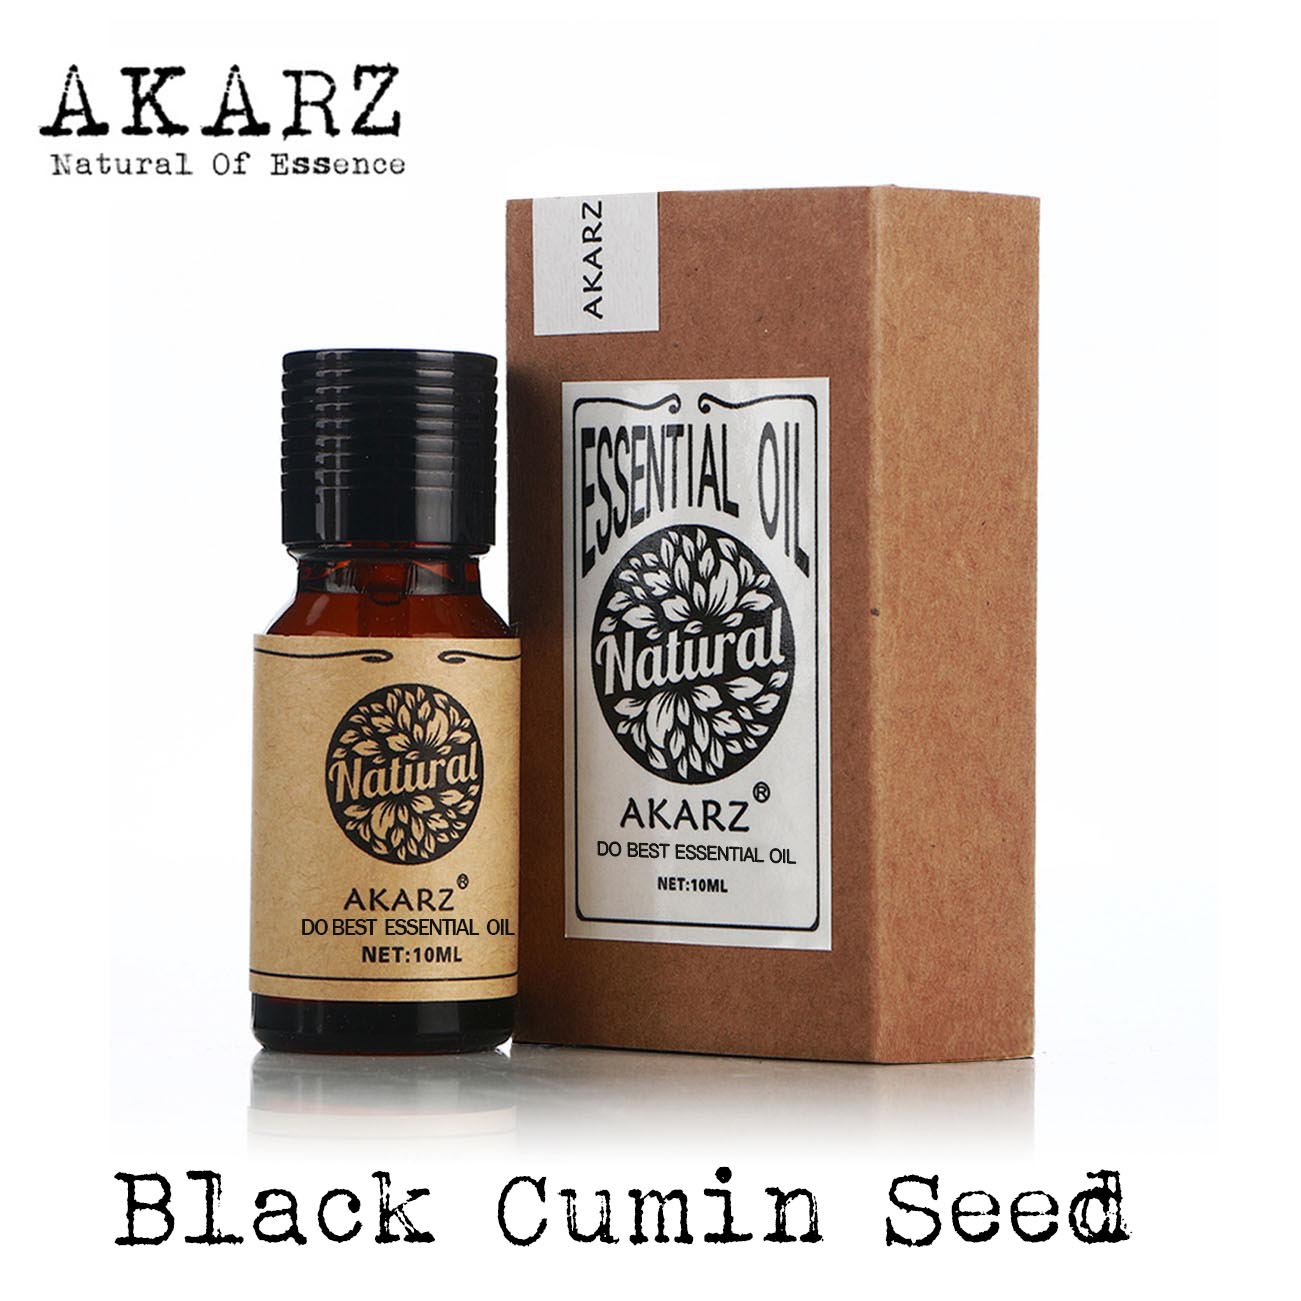 AKARZ natural Black Cumin Seed essential oil aromatic for aromatherapy diffusers body skin care aroma Black Cumin Seed oil